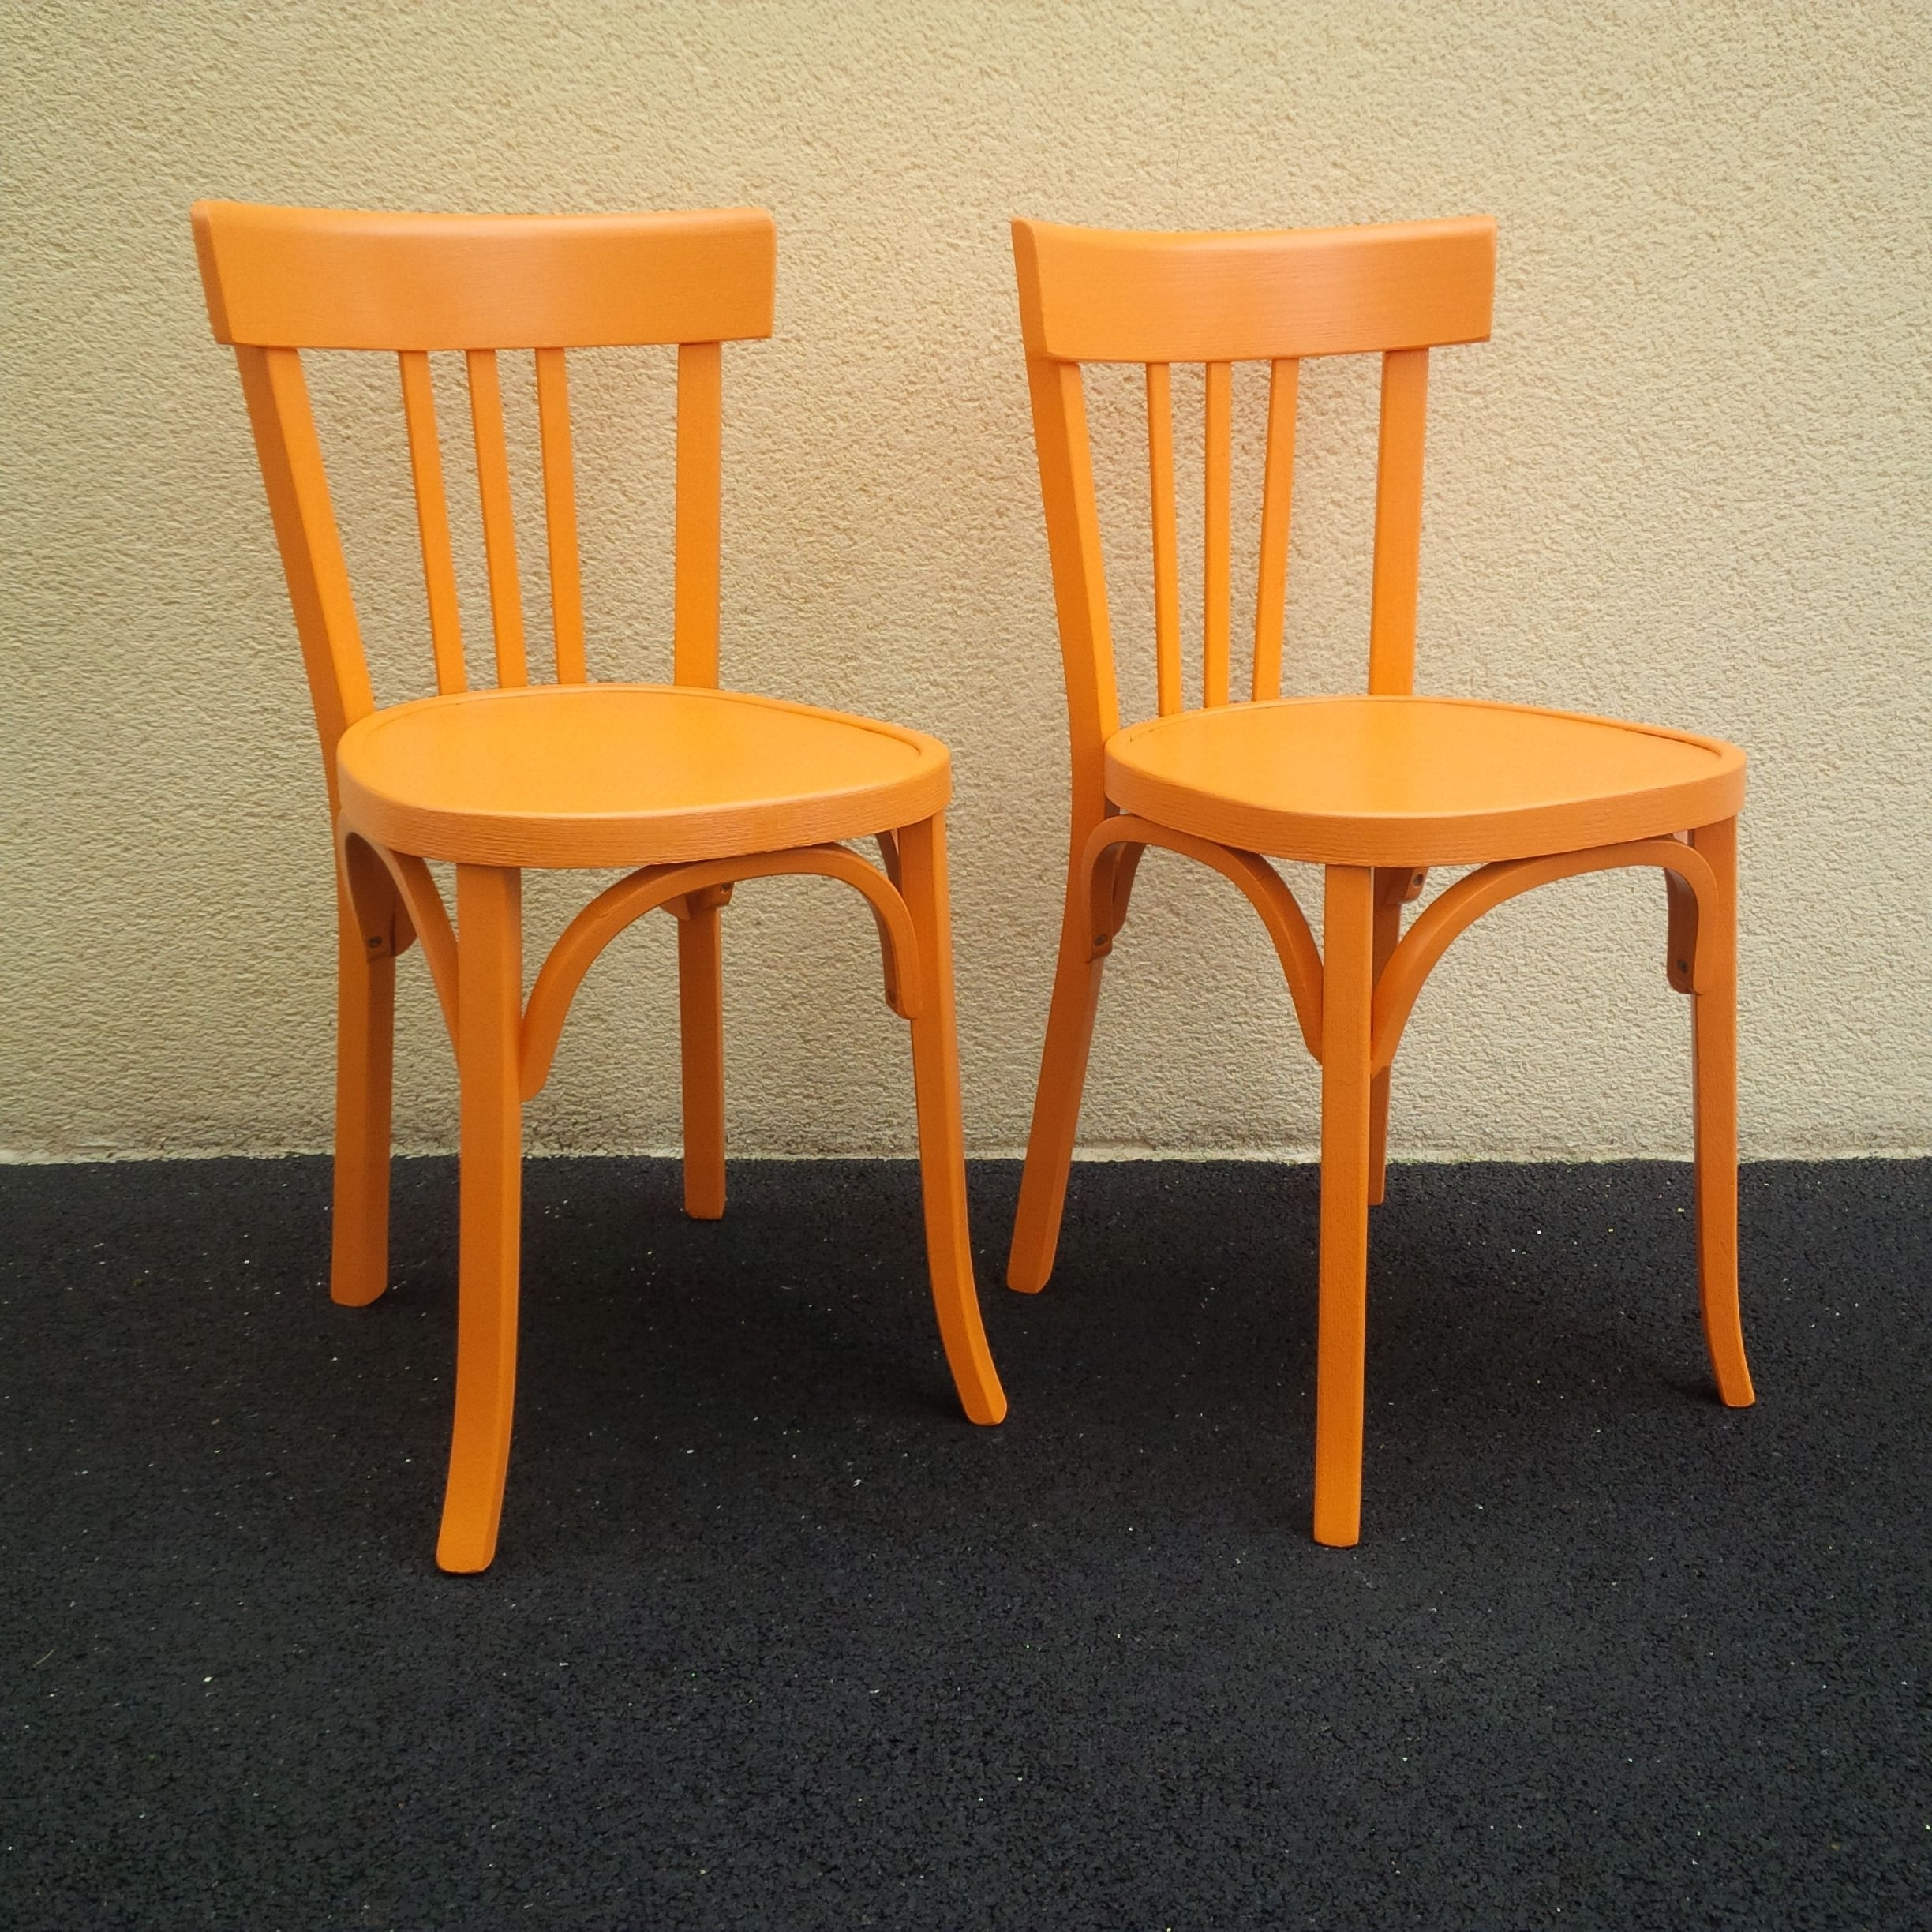 Chaises Baumann Bistrot Orangeade #chaise #baumann #bistrot For Well Known Orange Chaises (View 4 of 15)